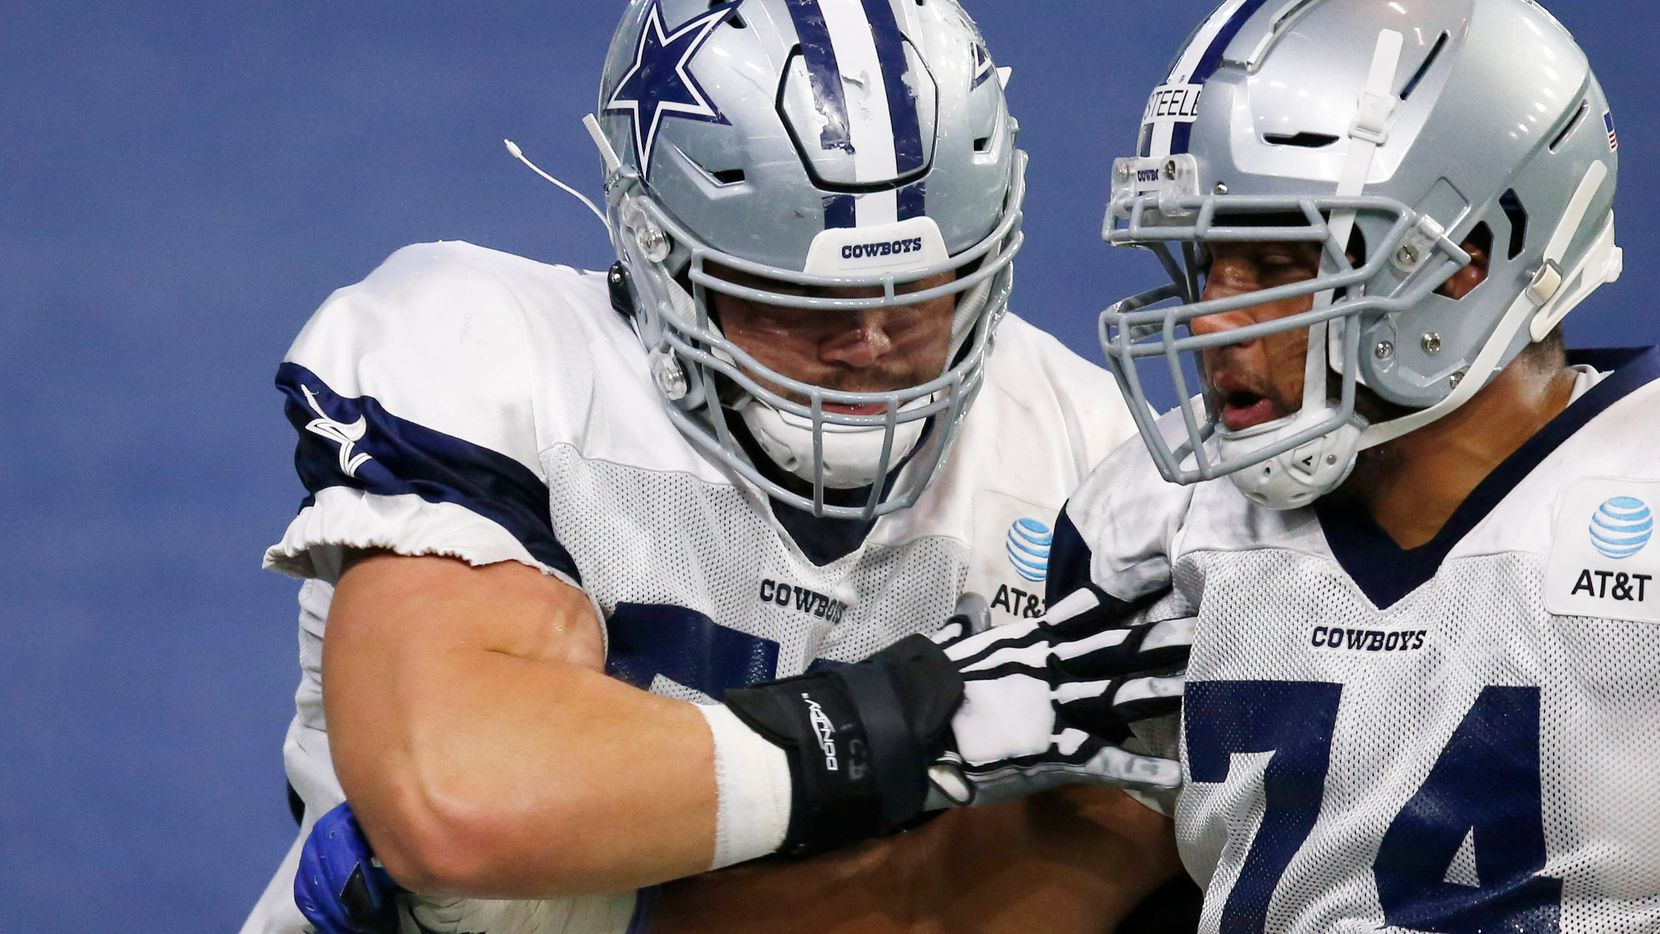 Dallas Cowboys guard Connor Williams (52) blocks Dallas Cowboys offensive tackle Terence Steele (74) in a drill during training camp at the Dallas Cowboys headquarters at The Star in Frisco, Texas on Monday, August 24, 2020. (Vernon Bryant/The Dallas Morning News)